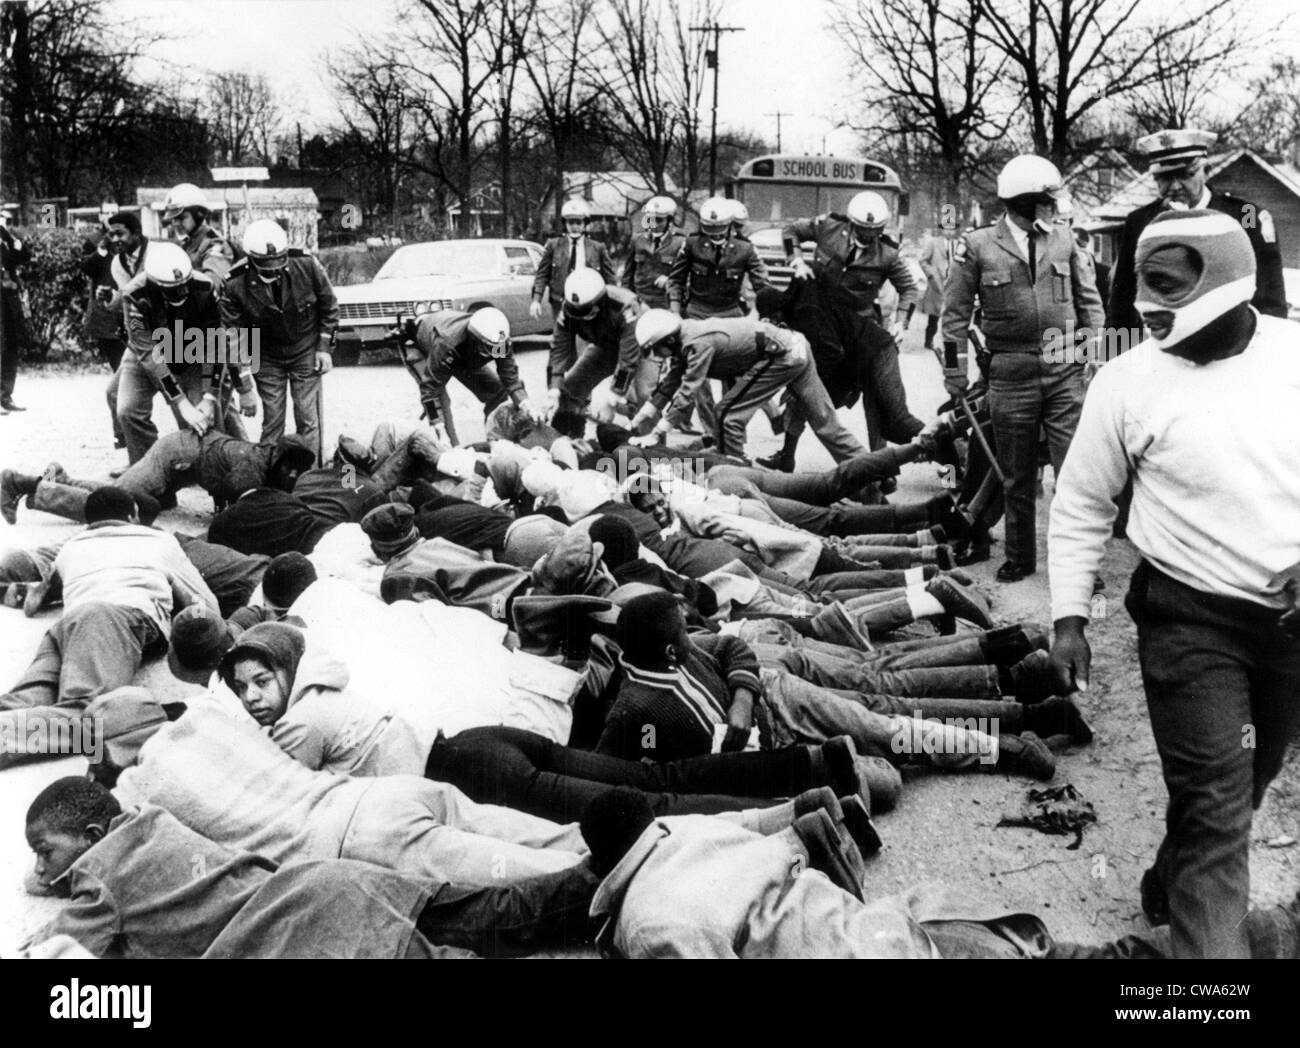 CIVIL RIGHTS, Social Circle, Georgia, State troopers arrest demonstrators blocking the path of a school bus protesting - Stock Image